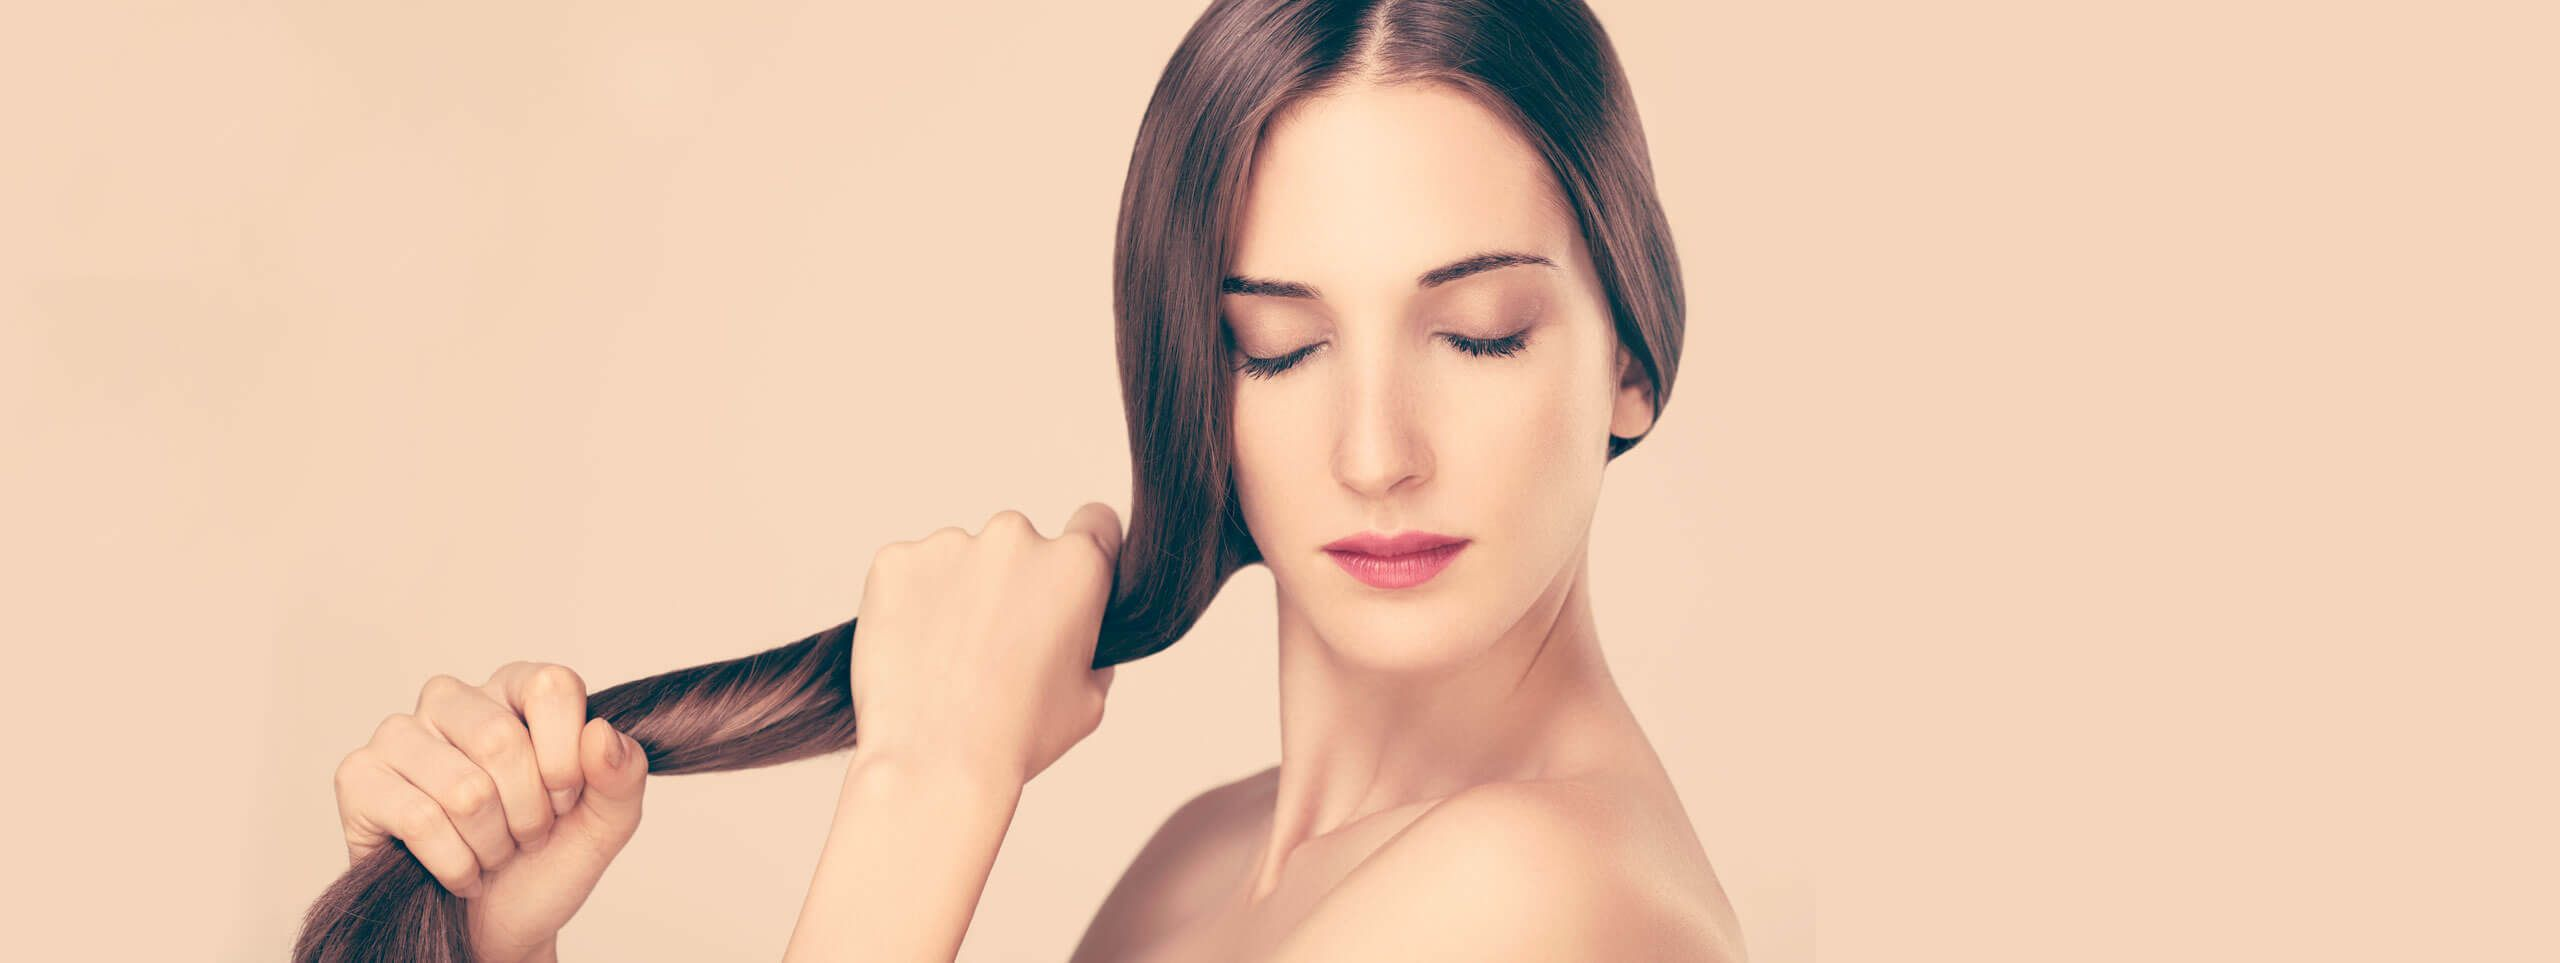 Woman styles hair with styling products